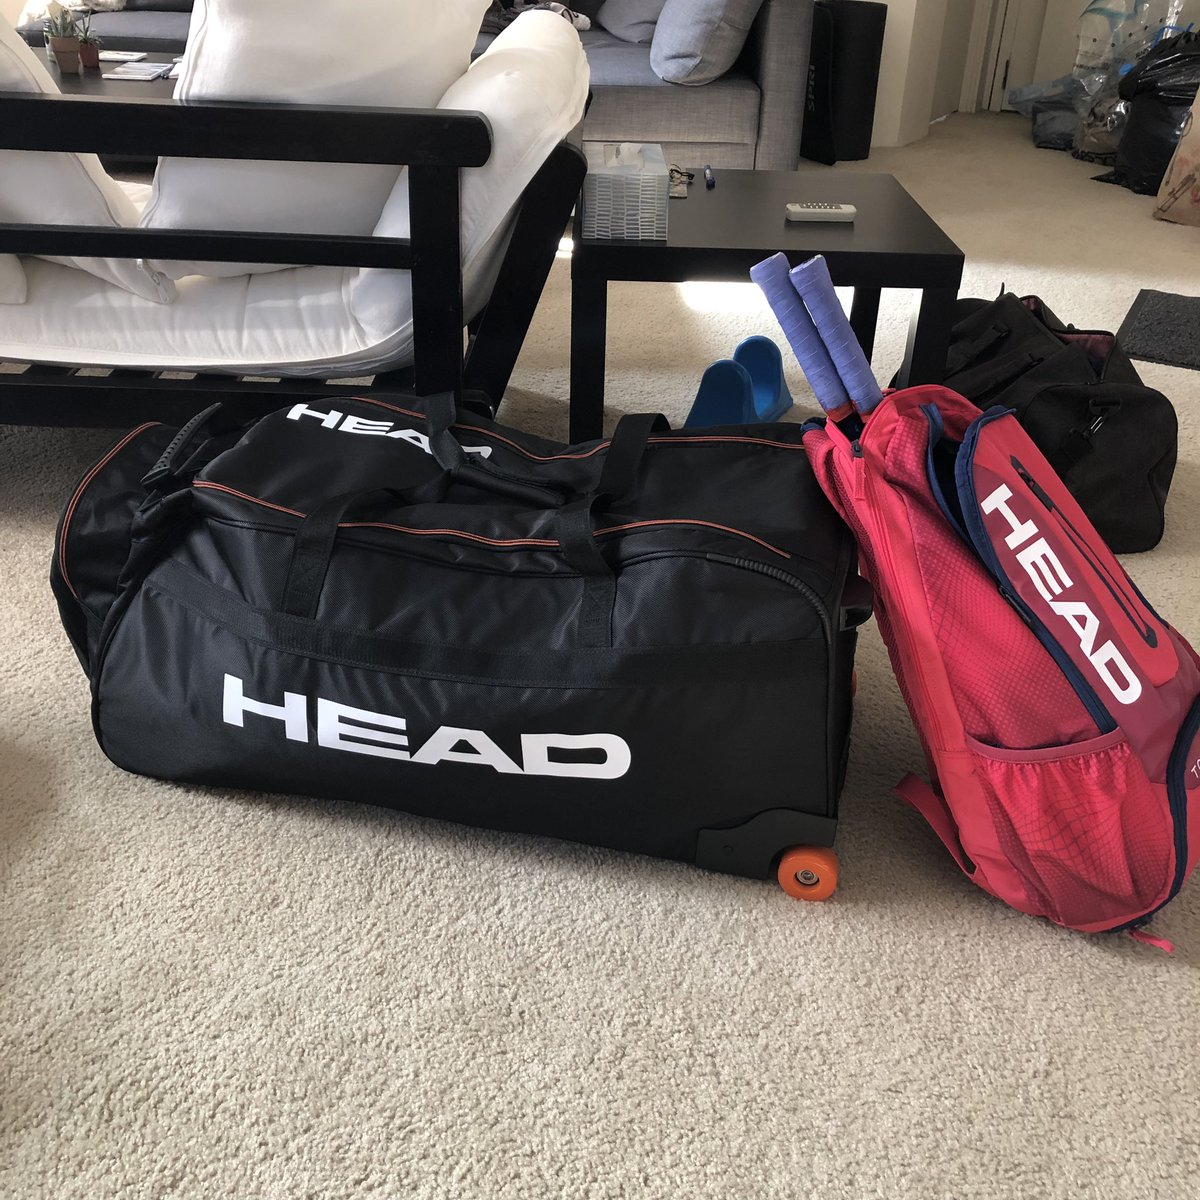 test Twitter Media - Locked & loaded for the PanAmerican Games!! Off to Lima & traveling in style thanks to the best! @head_squash 🙌🏽🙌🏽💪🏽💪🏽🇺🇸🇺🇸 #HeadSquash #TeamHead #TeamUSA #Lima2019  @TeamUSA @USSQUASH @Lima2019Games https://t.co/UZ1UqOFiGl